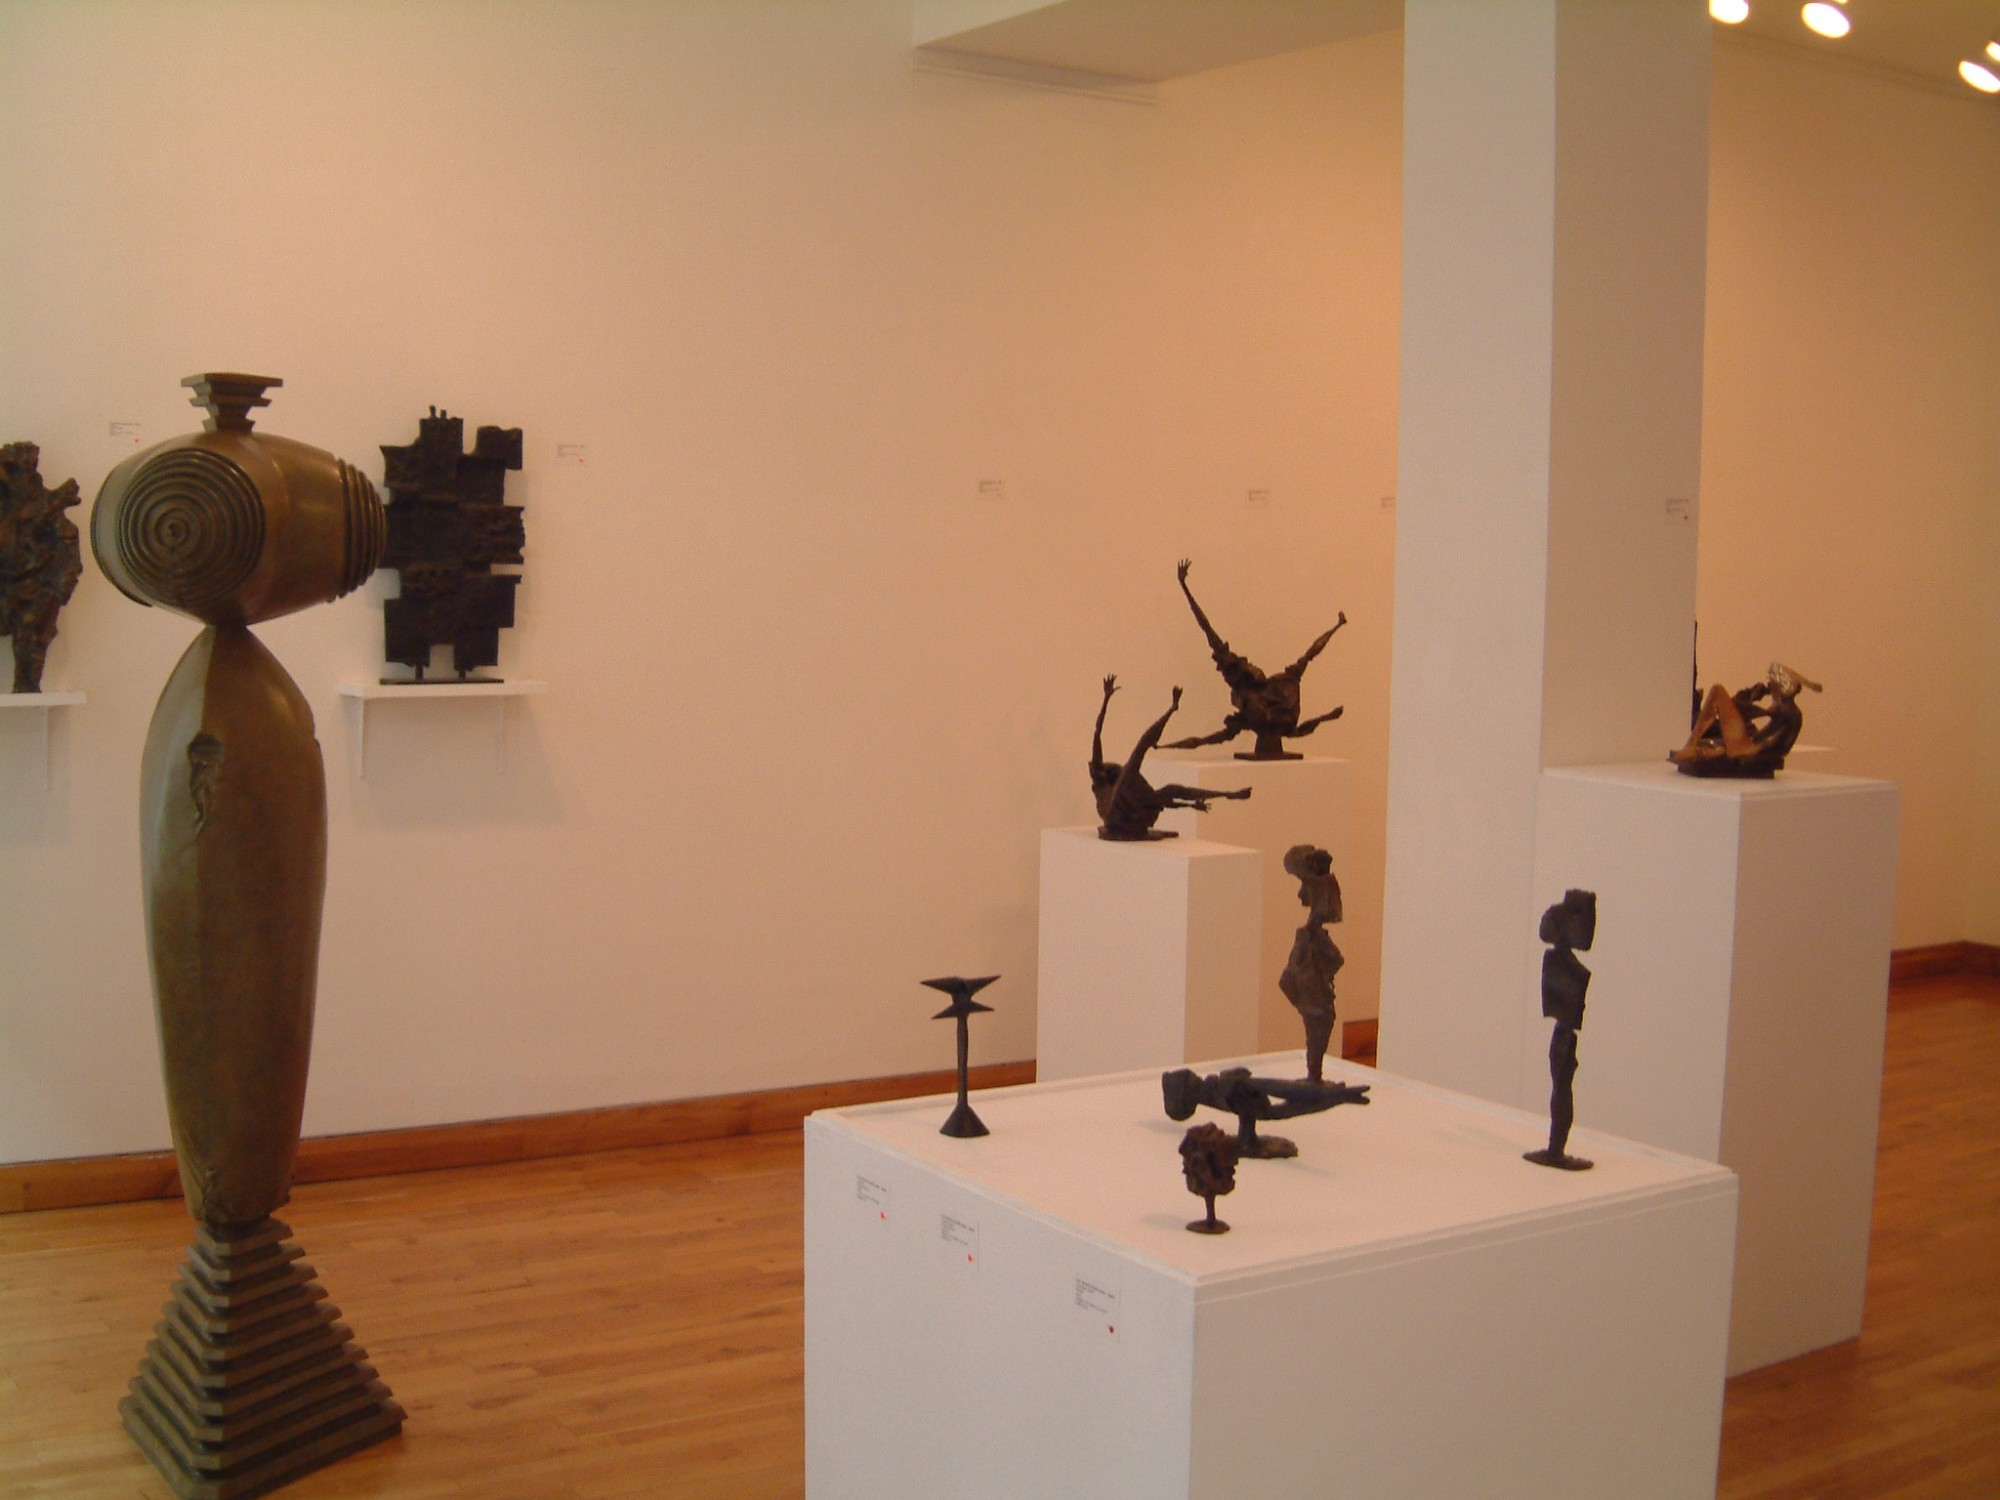 "<span class=""link fancybox-details-link""><a href=""/exhibitions/113/works/image_standalone462/"">View Detail Page</a></span><p>F. E. MCWILLIAM 